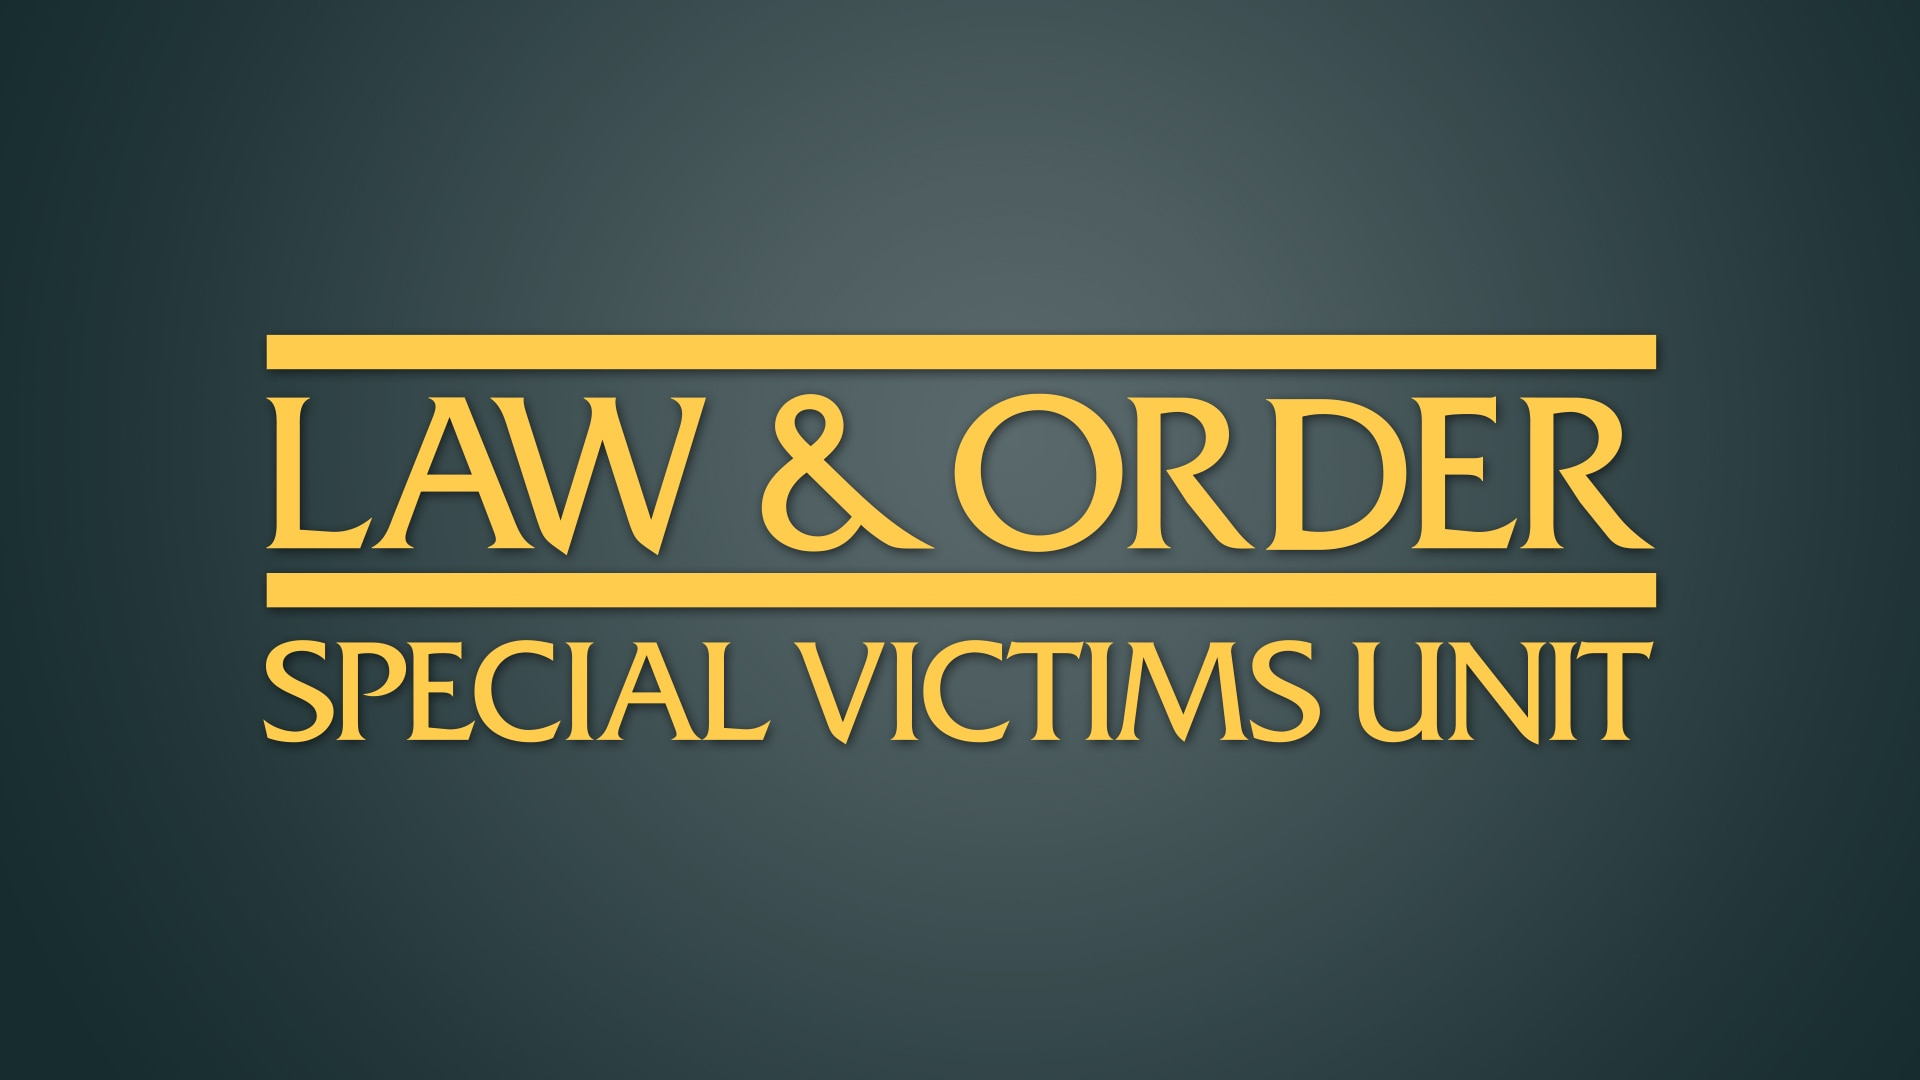 Law & Order: Special Victims Unit - NBC com